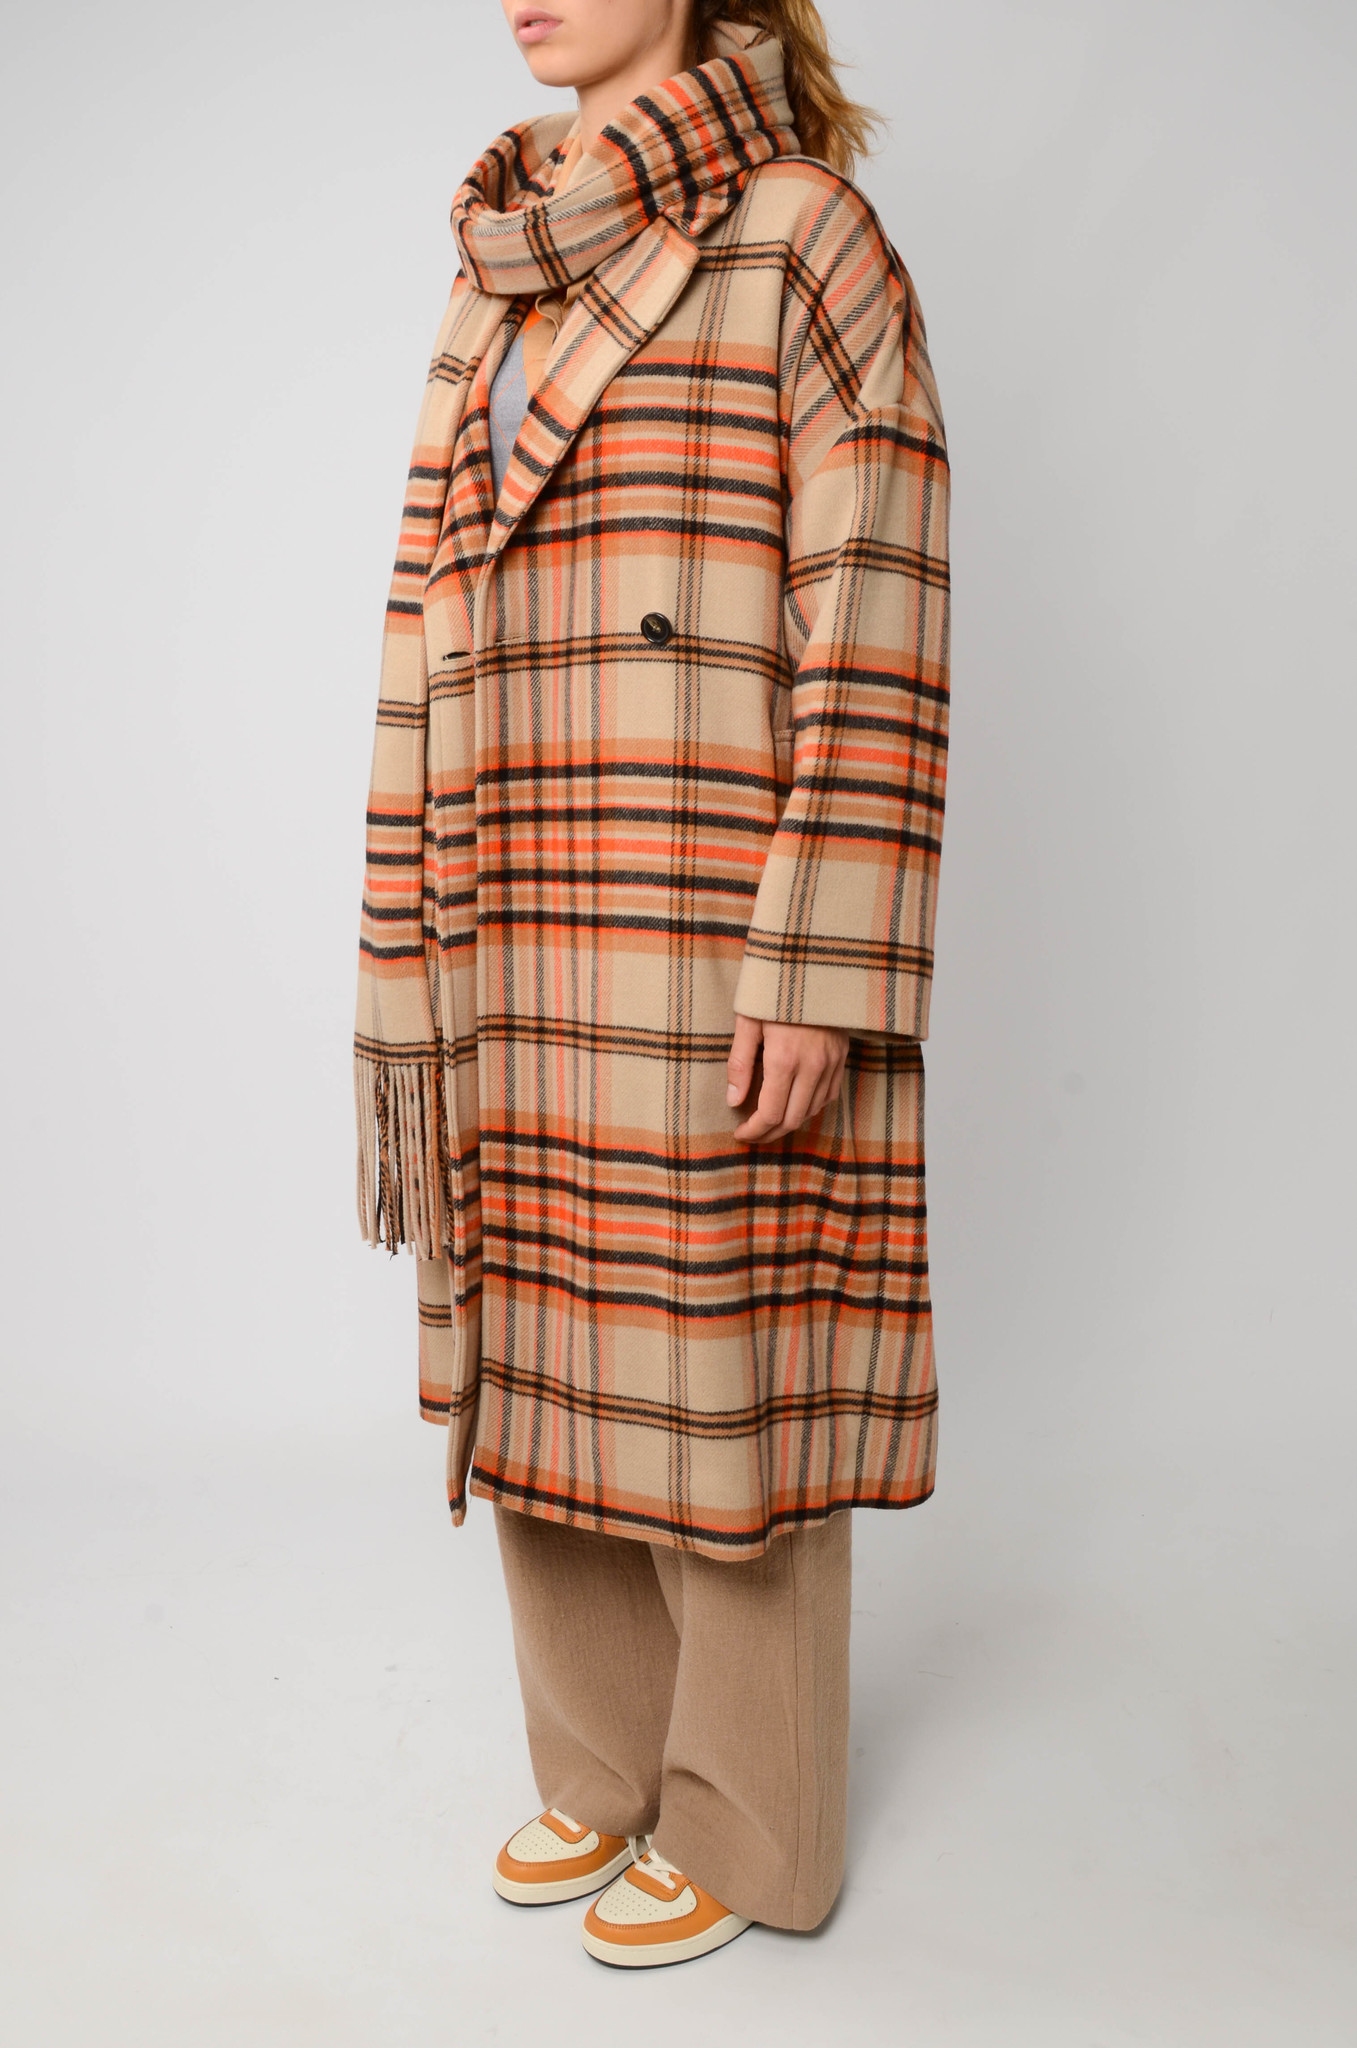 CHECKERED COAT IN ORANGE AND CAMEL-4